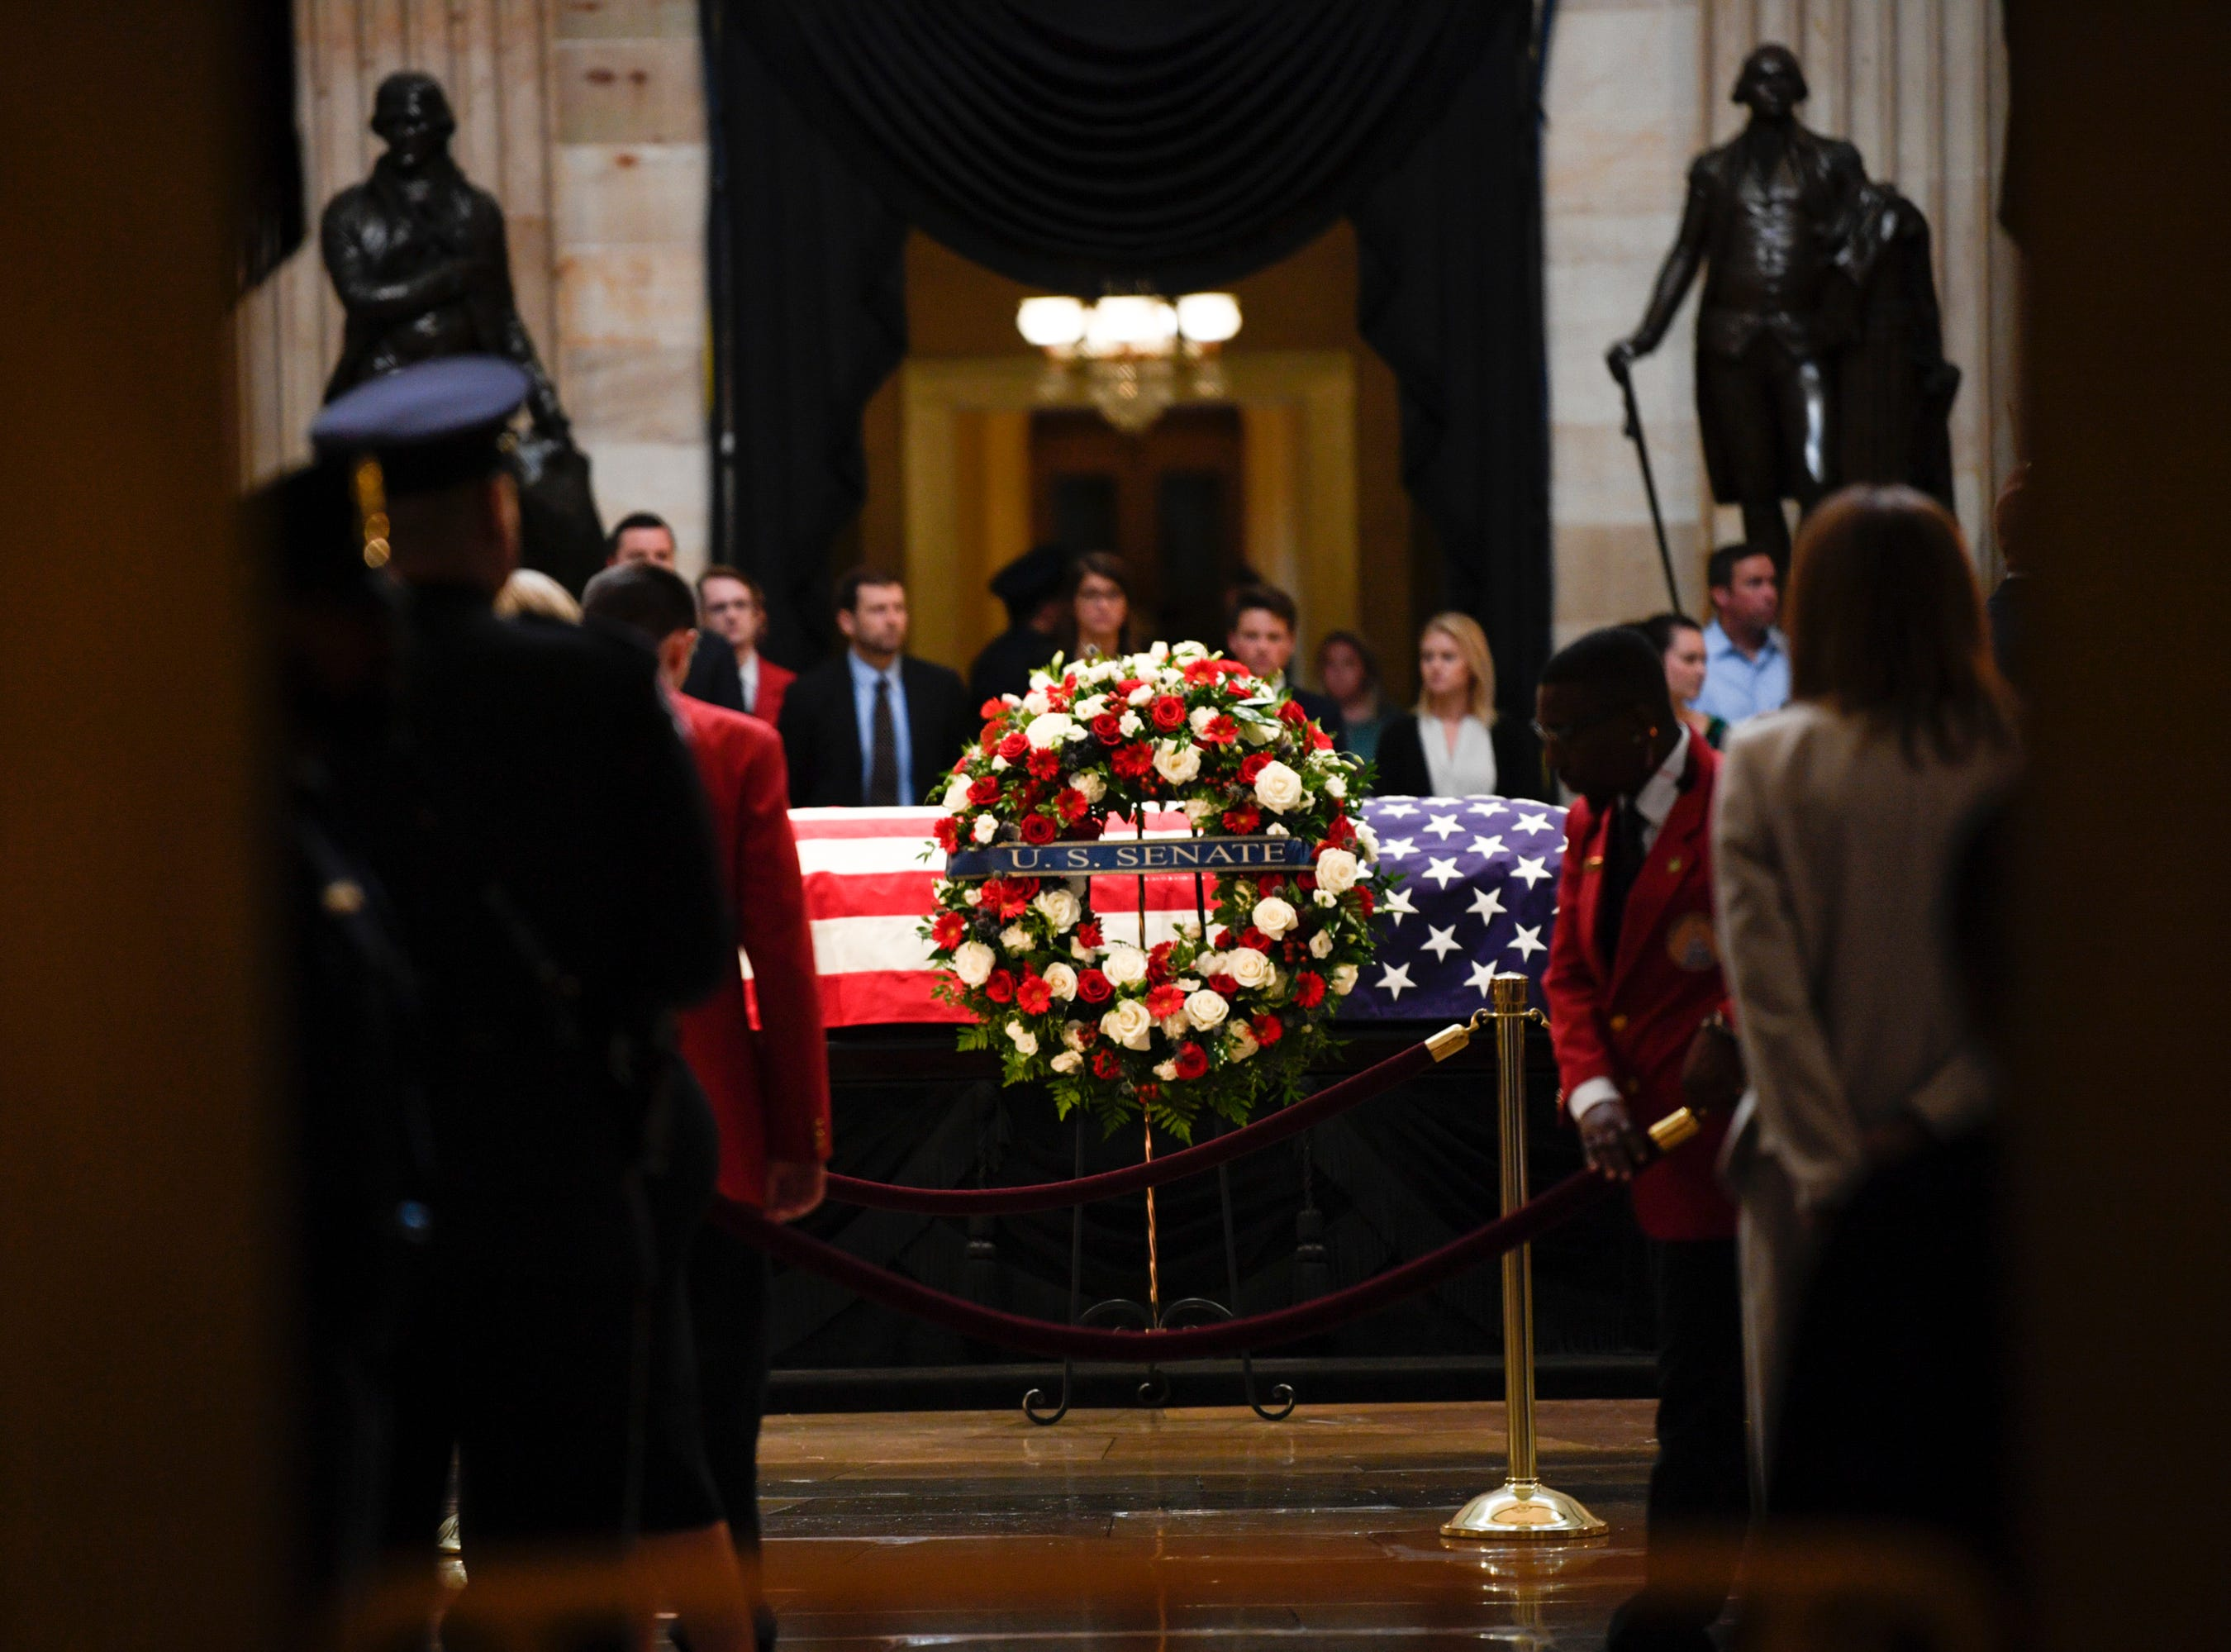 8/31/18 1:07:16 PM -- Washington, DC, U.S.A  -- The body of John McCain lies in state at the U.S. Capitol in Washington on Aug. 31, 2018 in Washington. Sen. McCain died on Aug. 25. --    Photo by Jasper Colt, USA TODAY Staff